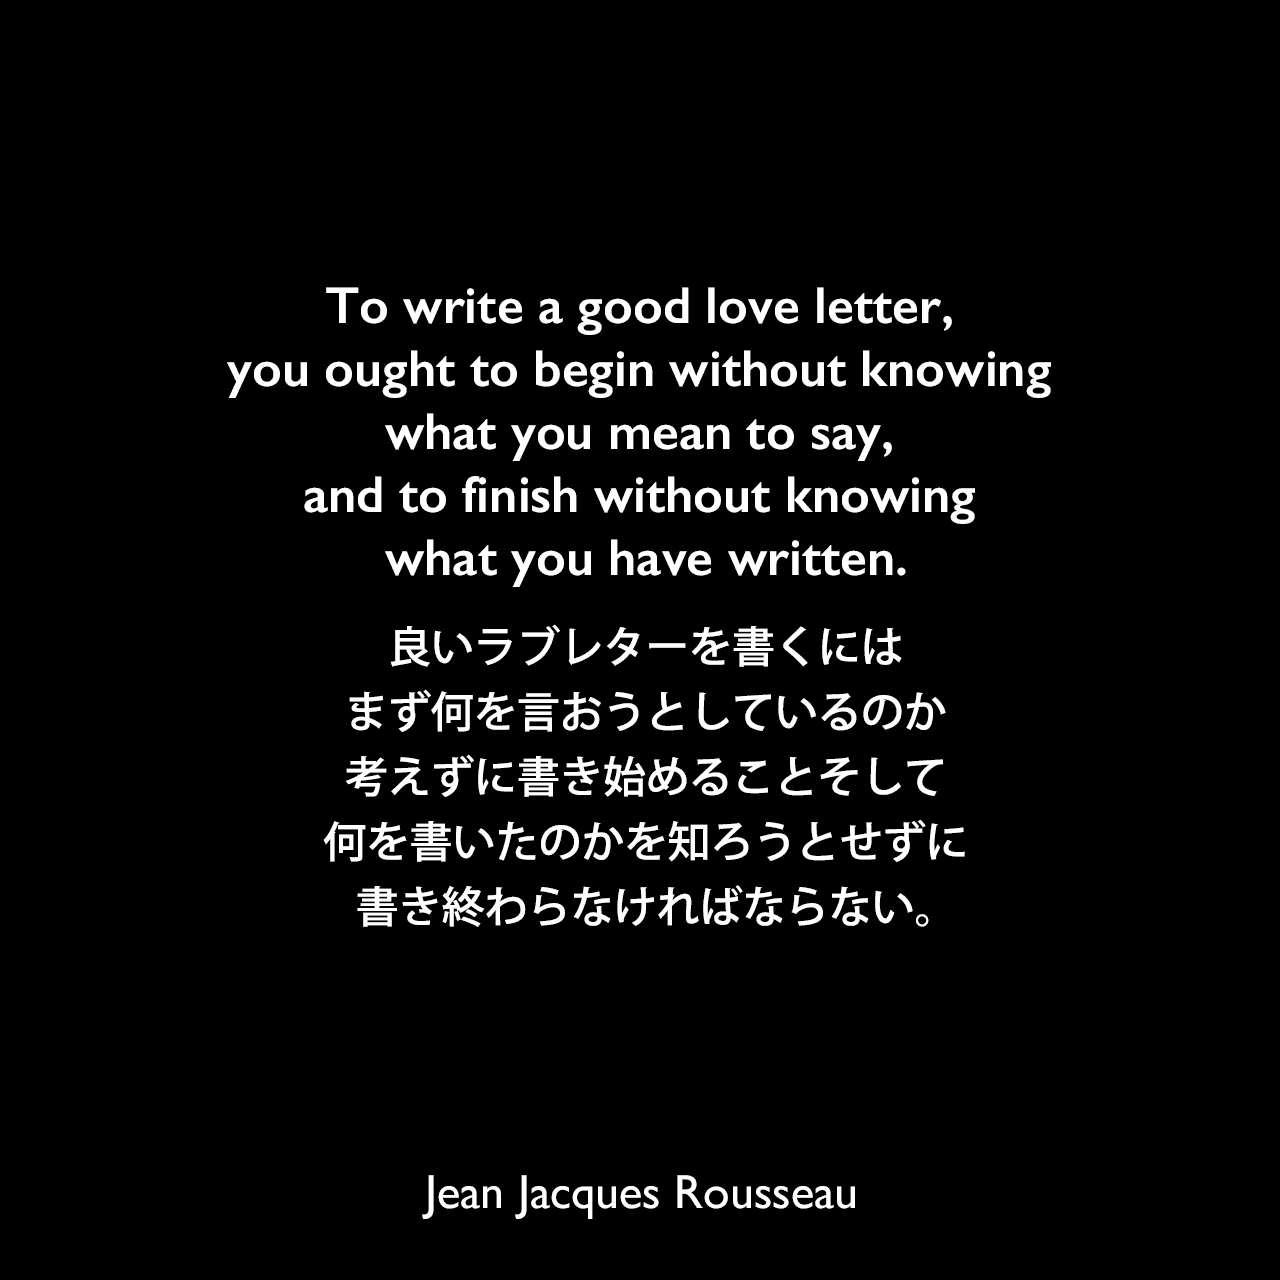 To write a good love letter, you ought to begin without knowing what you mean to say, and to finish without knowing what you have written.良いラブレターを書くには、まず何を言おうとしているのか考えずに書き始めることそして、何を書いたのかを知ろうとせずに書き終わらなければならない。Jean Jacques Rousseau